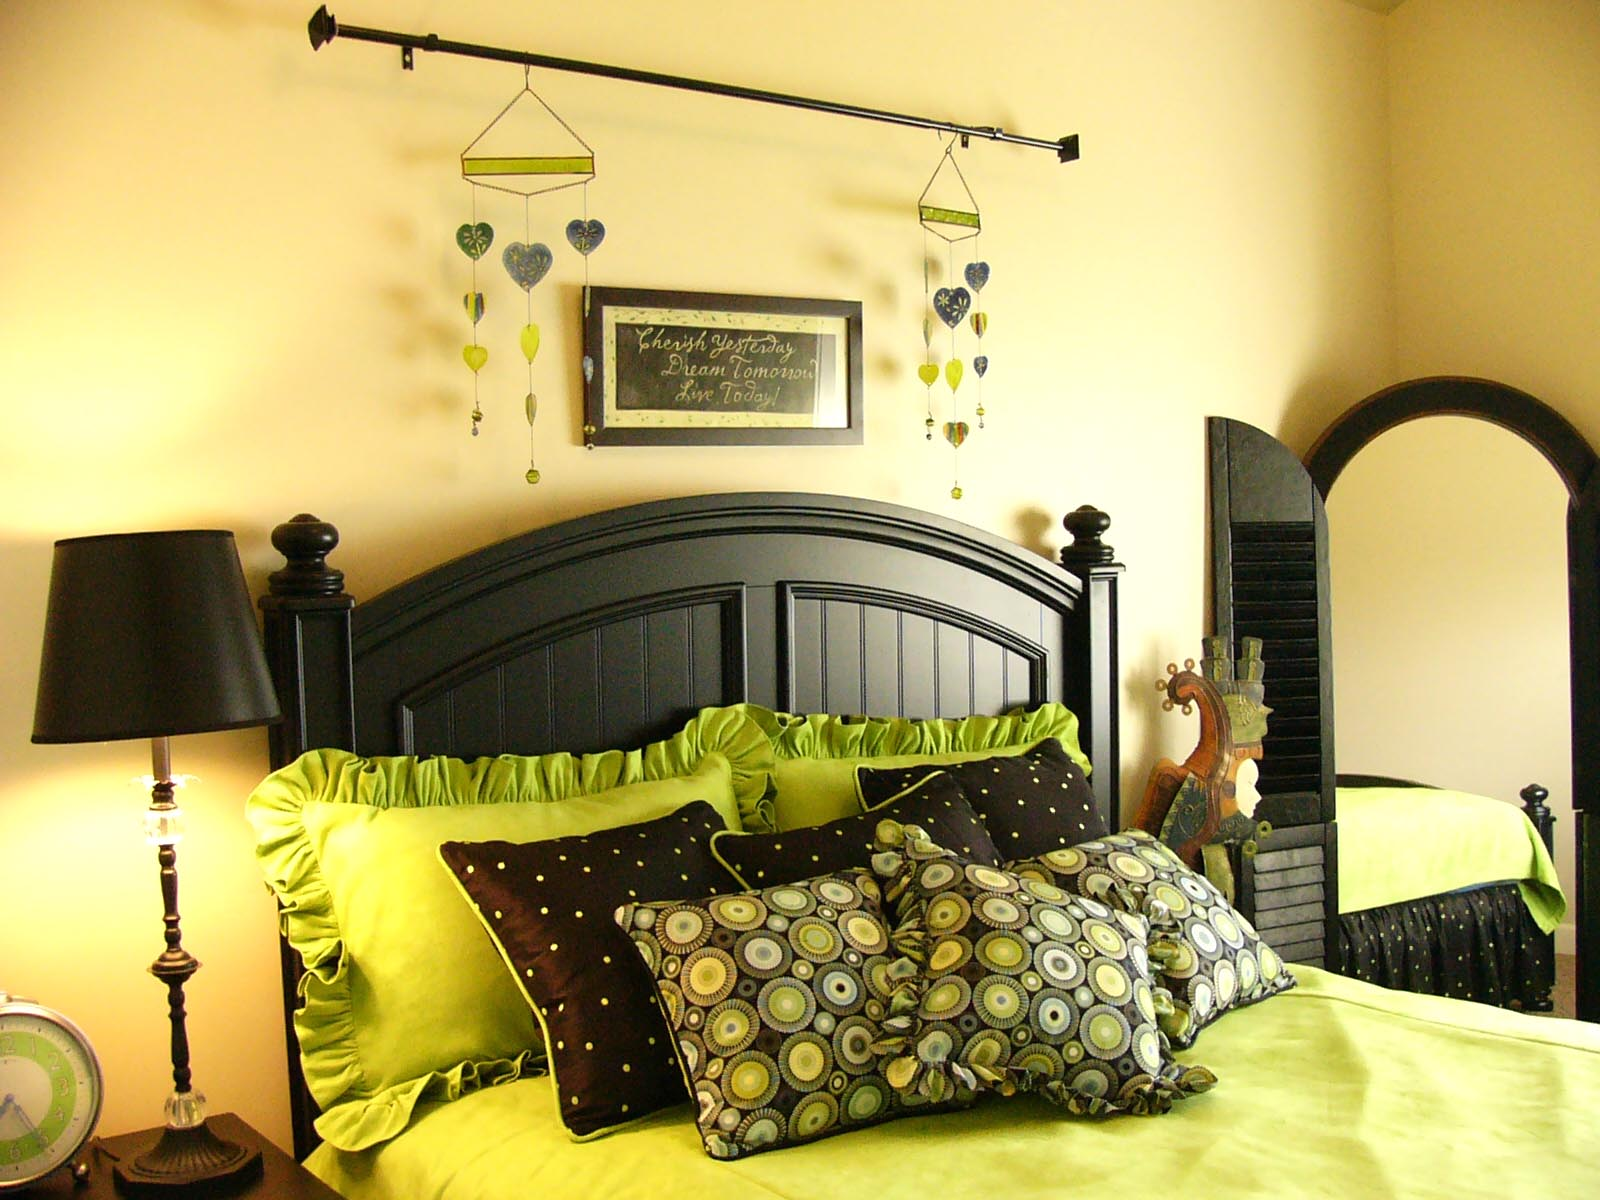 Virtual World of Blogging: Most Beautifully Decorated Rooms